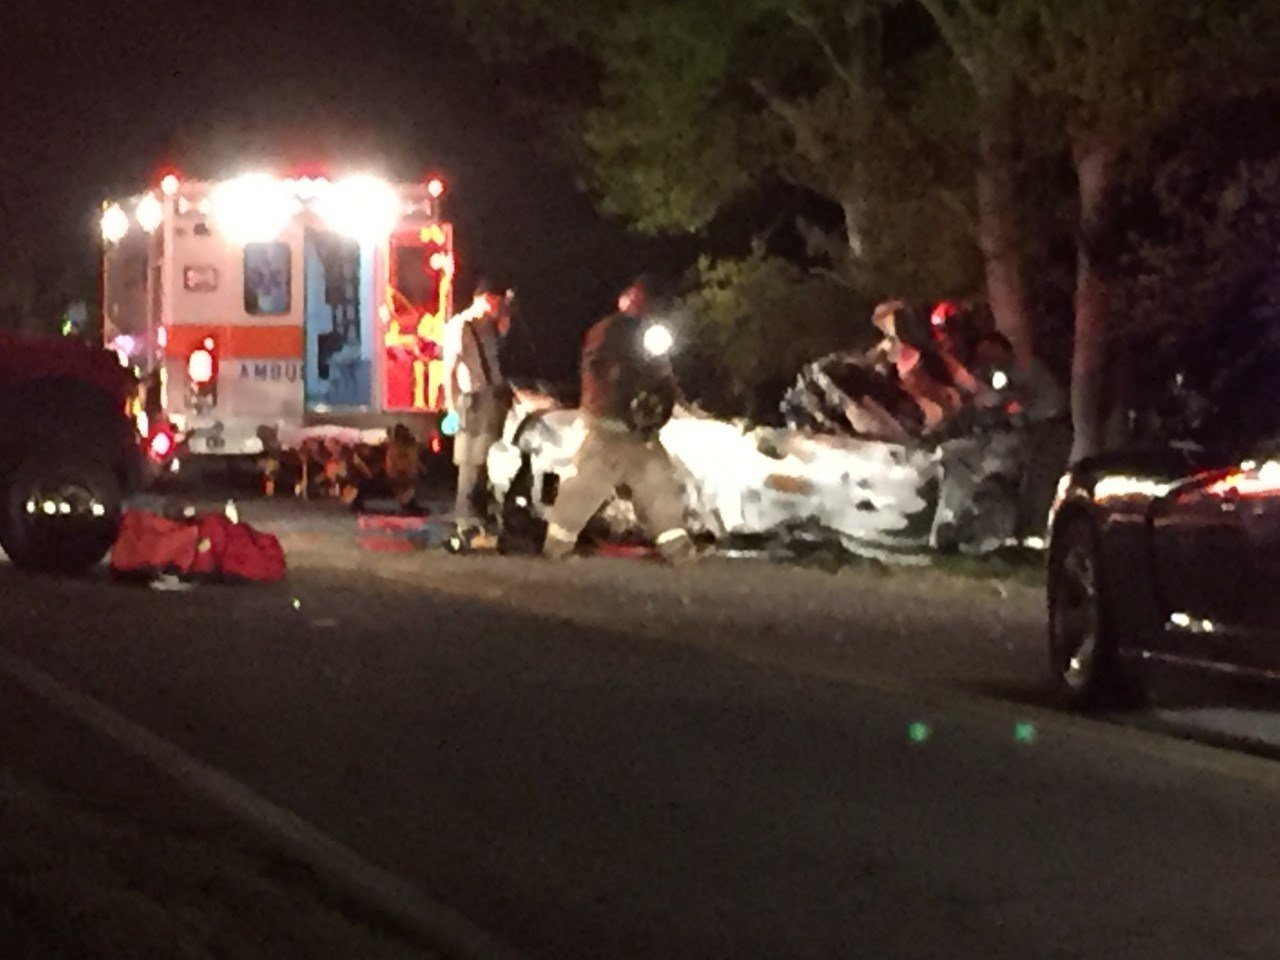 The coroner confirmed a man died after a car caught fire in Anderson County Sunday morning (FOX Carolina: 4/9/2017).